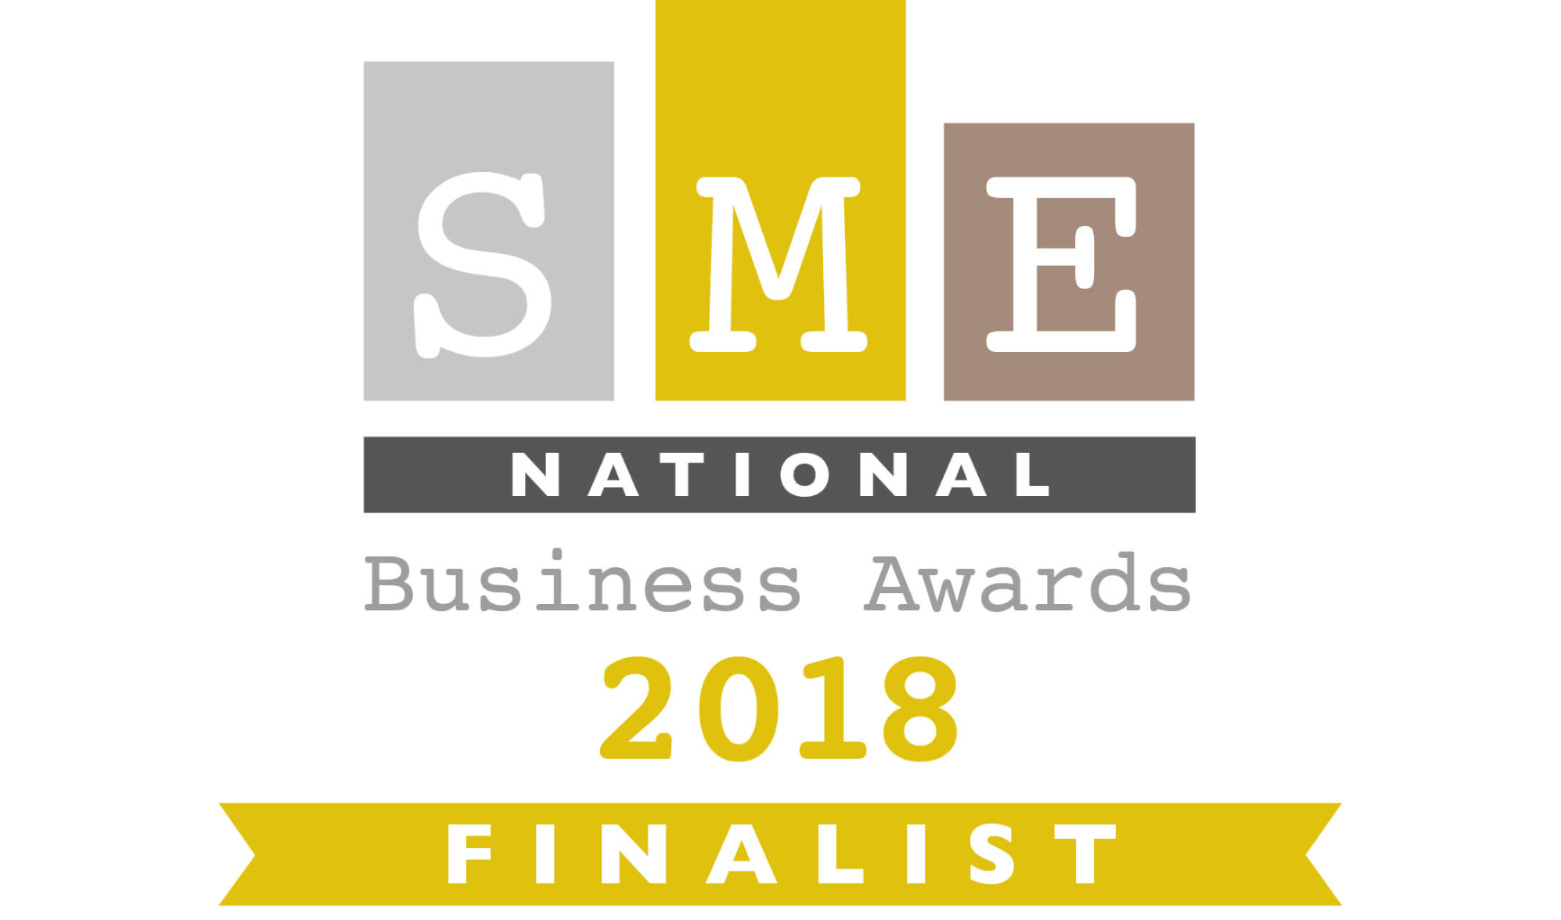 Basset & Gold is proud to be selected as a co-finalist of the SME National Business Awards in the 'FinTech Business of the Year' category.